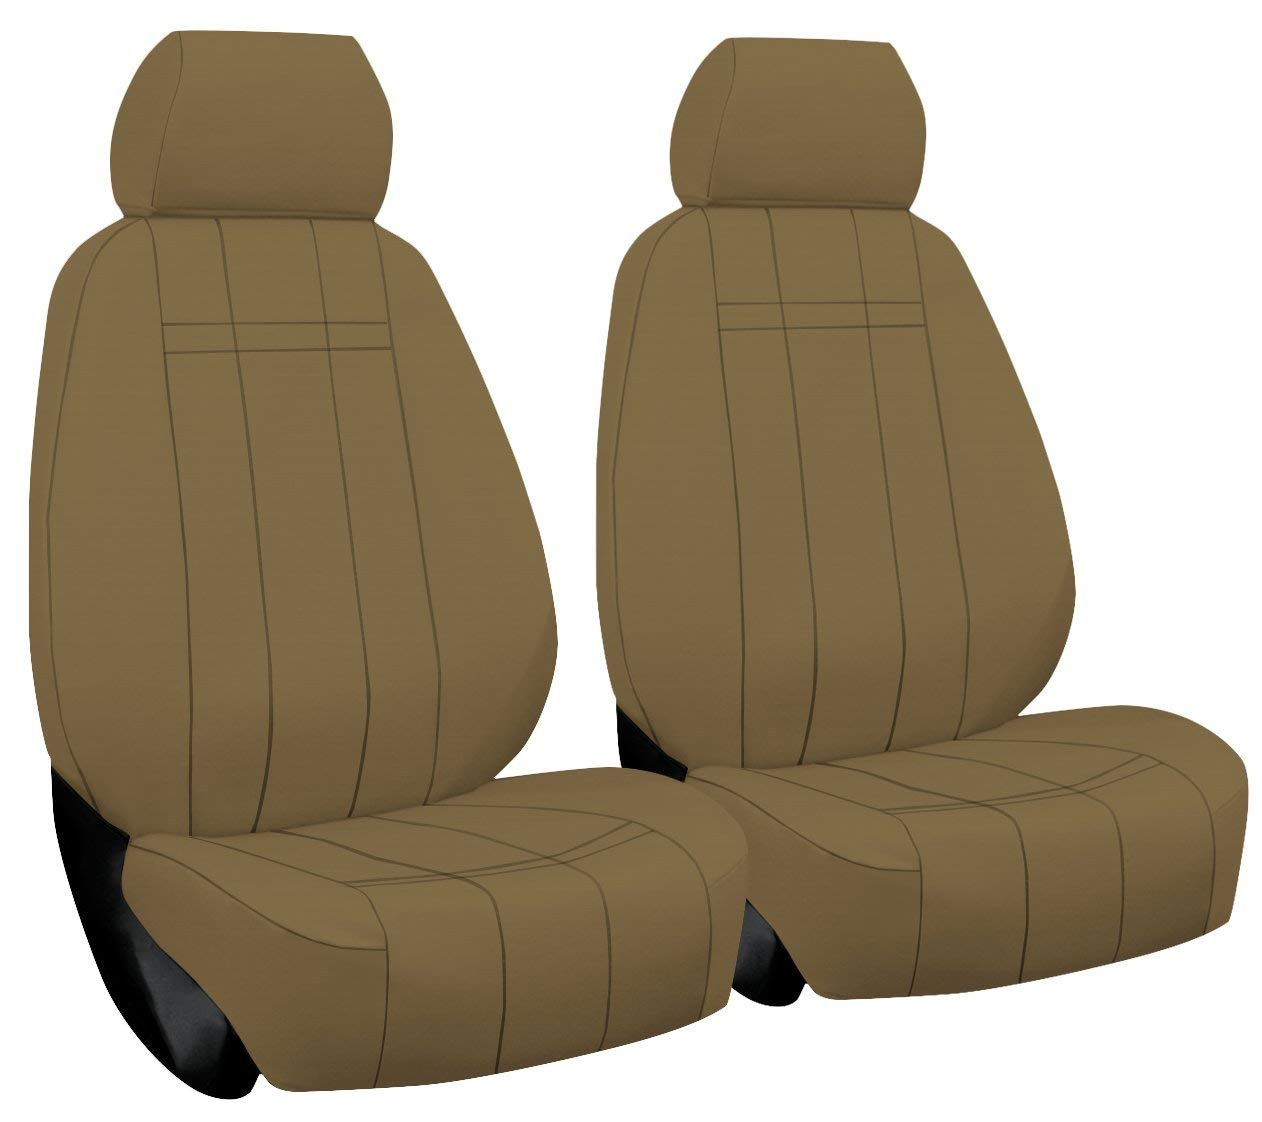 2003-2006 ShearComfort Custom Breathable Mesh Seat Covers for Chevy Avalanche in Black w/Tan for 60/40 Split Back and Bottom w/Pullout Arm and Adjustable Headrests and Seatbelt in Seat Rear SEAT